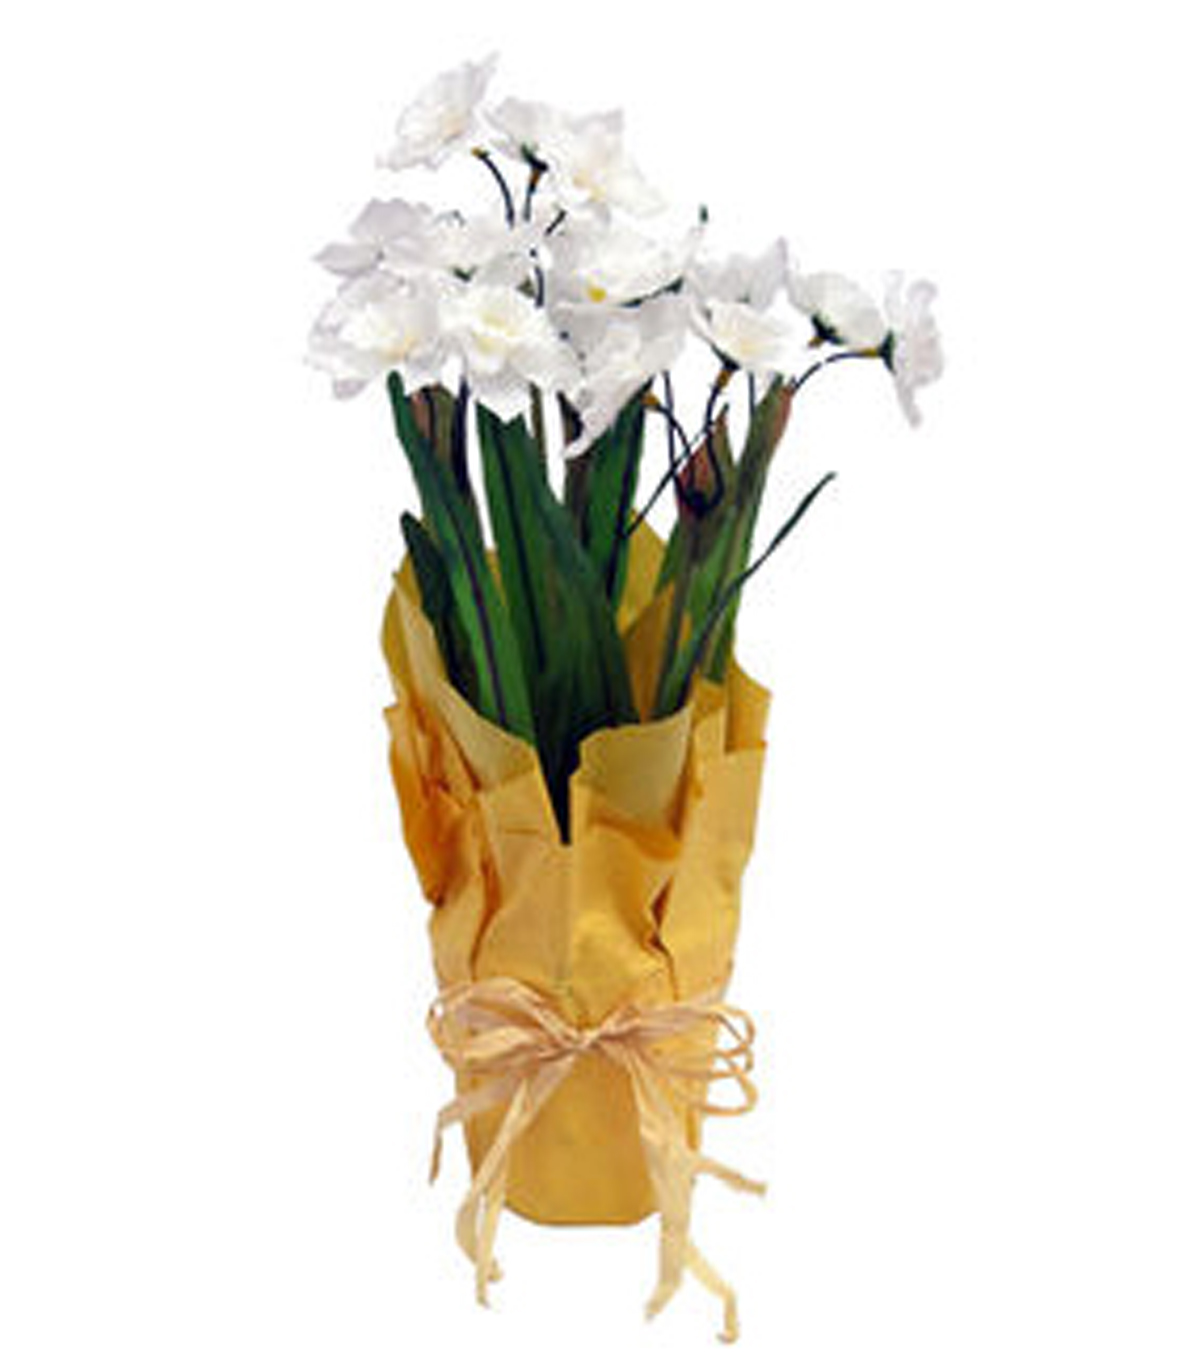 Blooming Spring Daffodil In Pot-White & Yellow